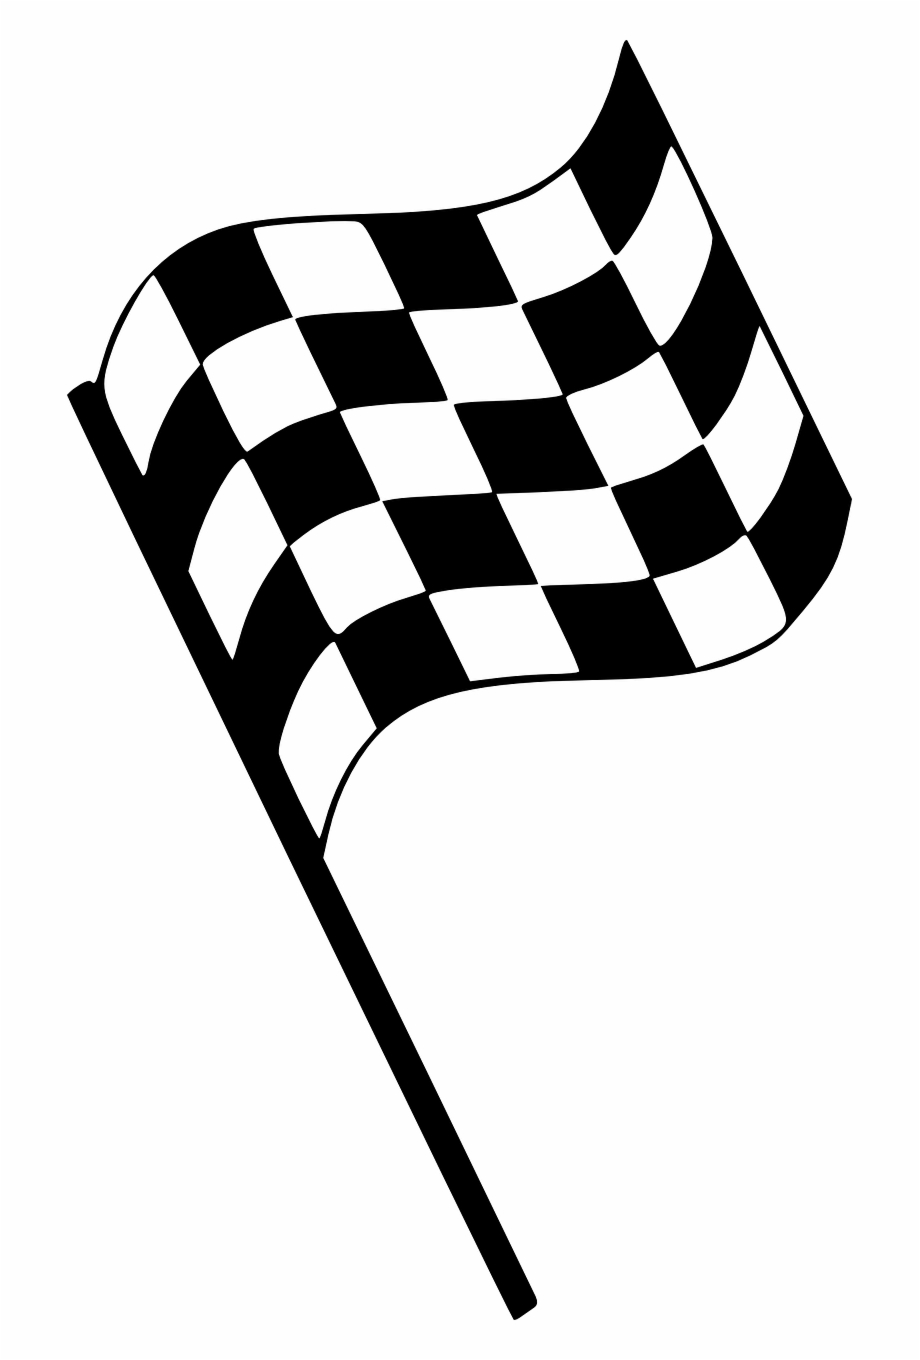 Checkered Flag Start Stop Race Png Image.